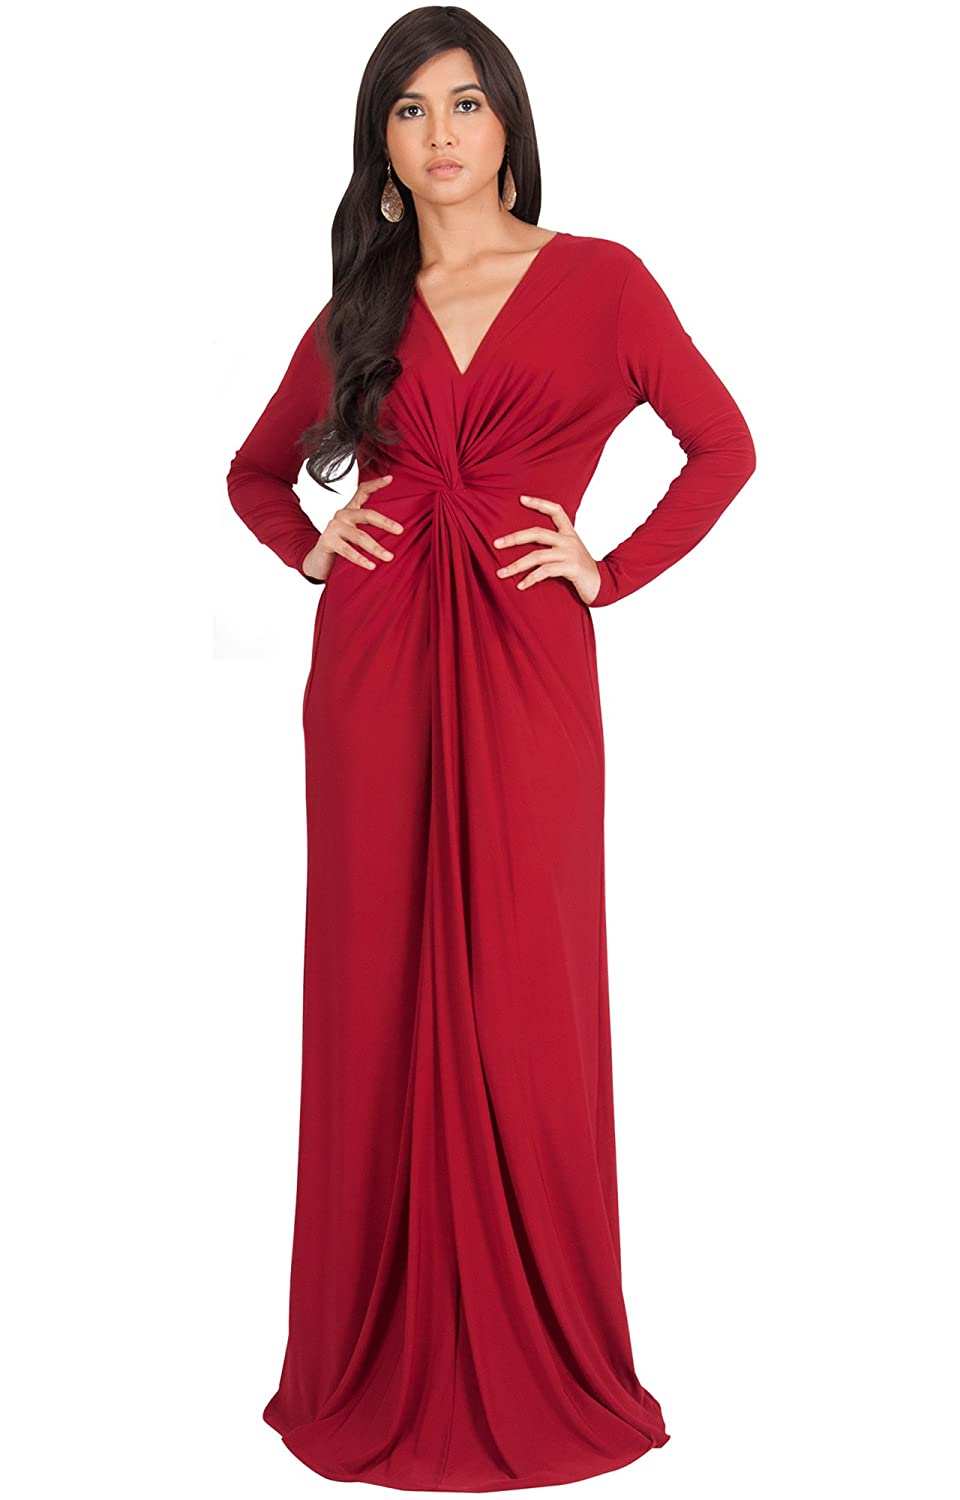 586bfdb20f GARMENT CARE - Hand or machine washable. Can be dry-cleaned if desired.  This amazing maxi dress is a great plus size maxi dress and can be worn ...